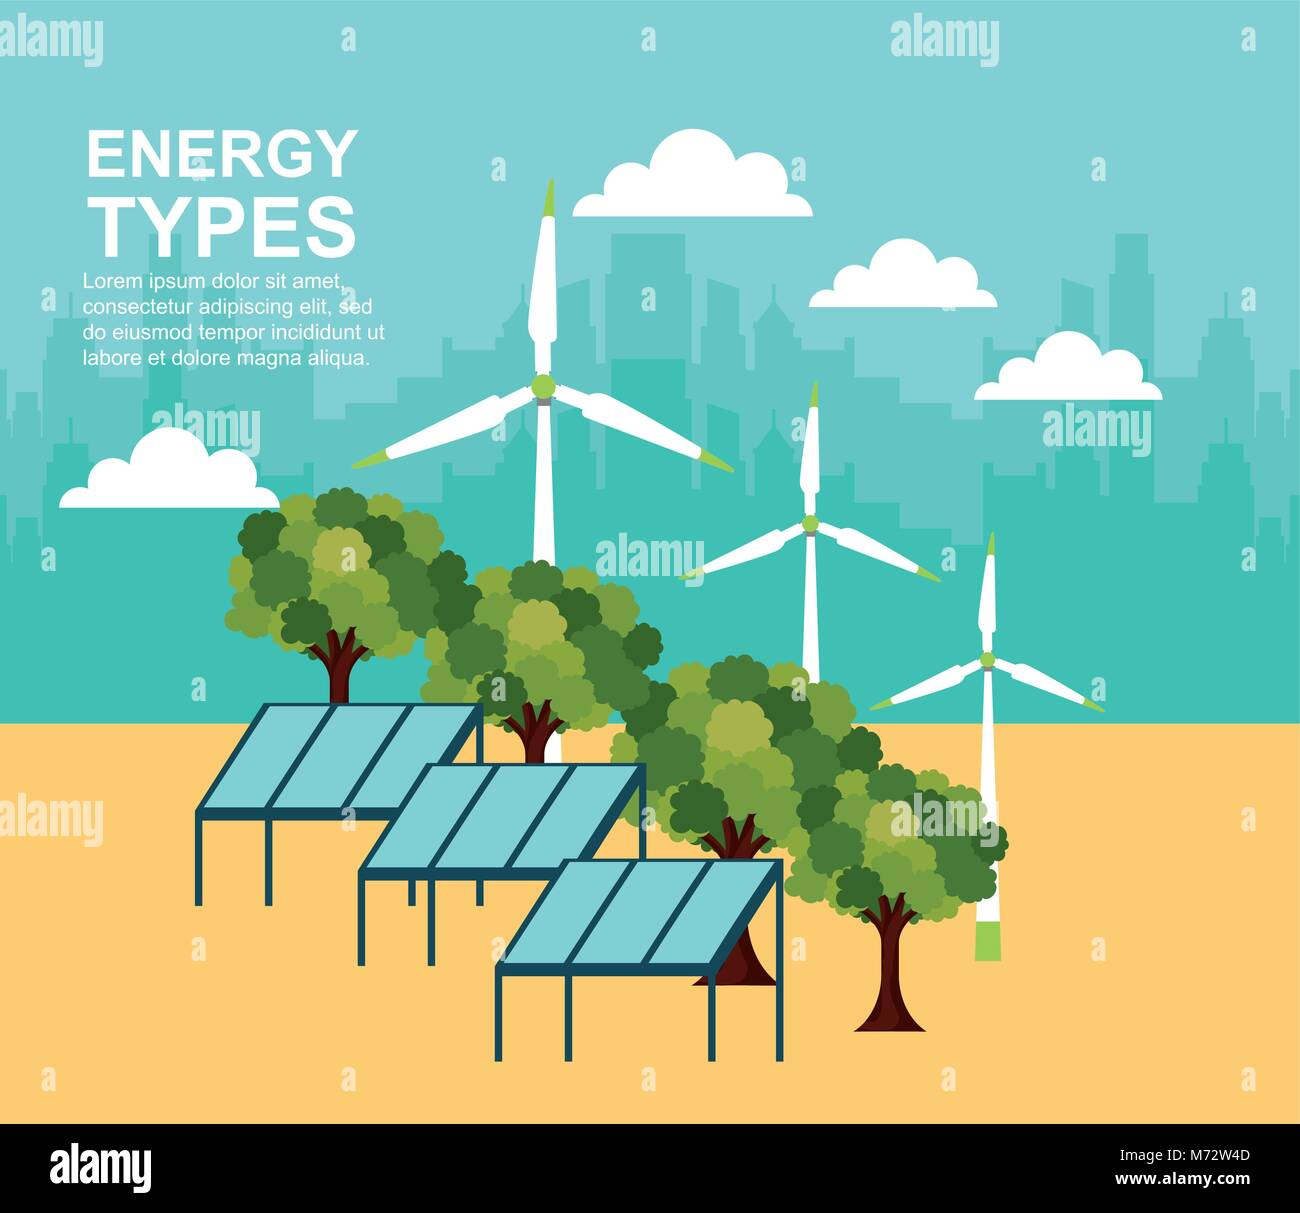 hight resolution of energy types ecological stock vector